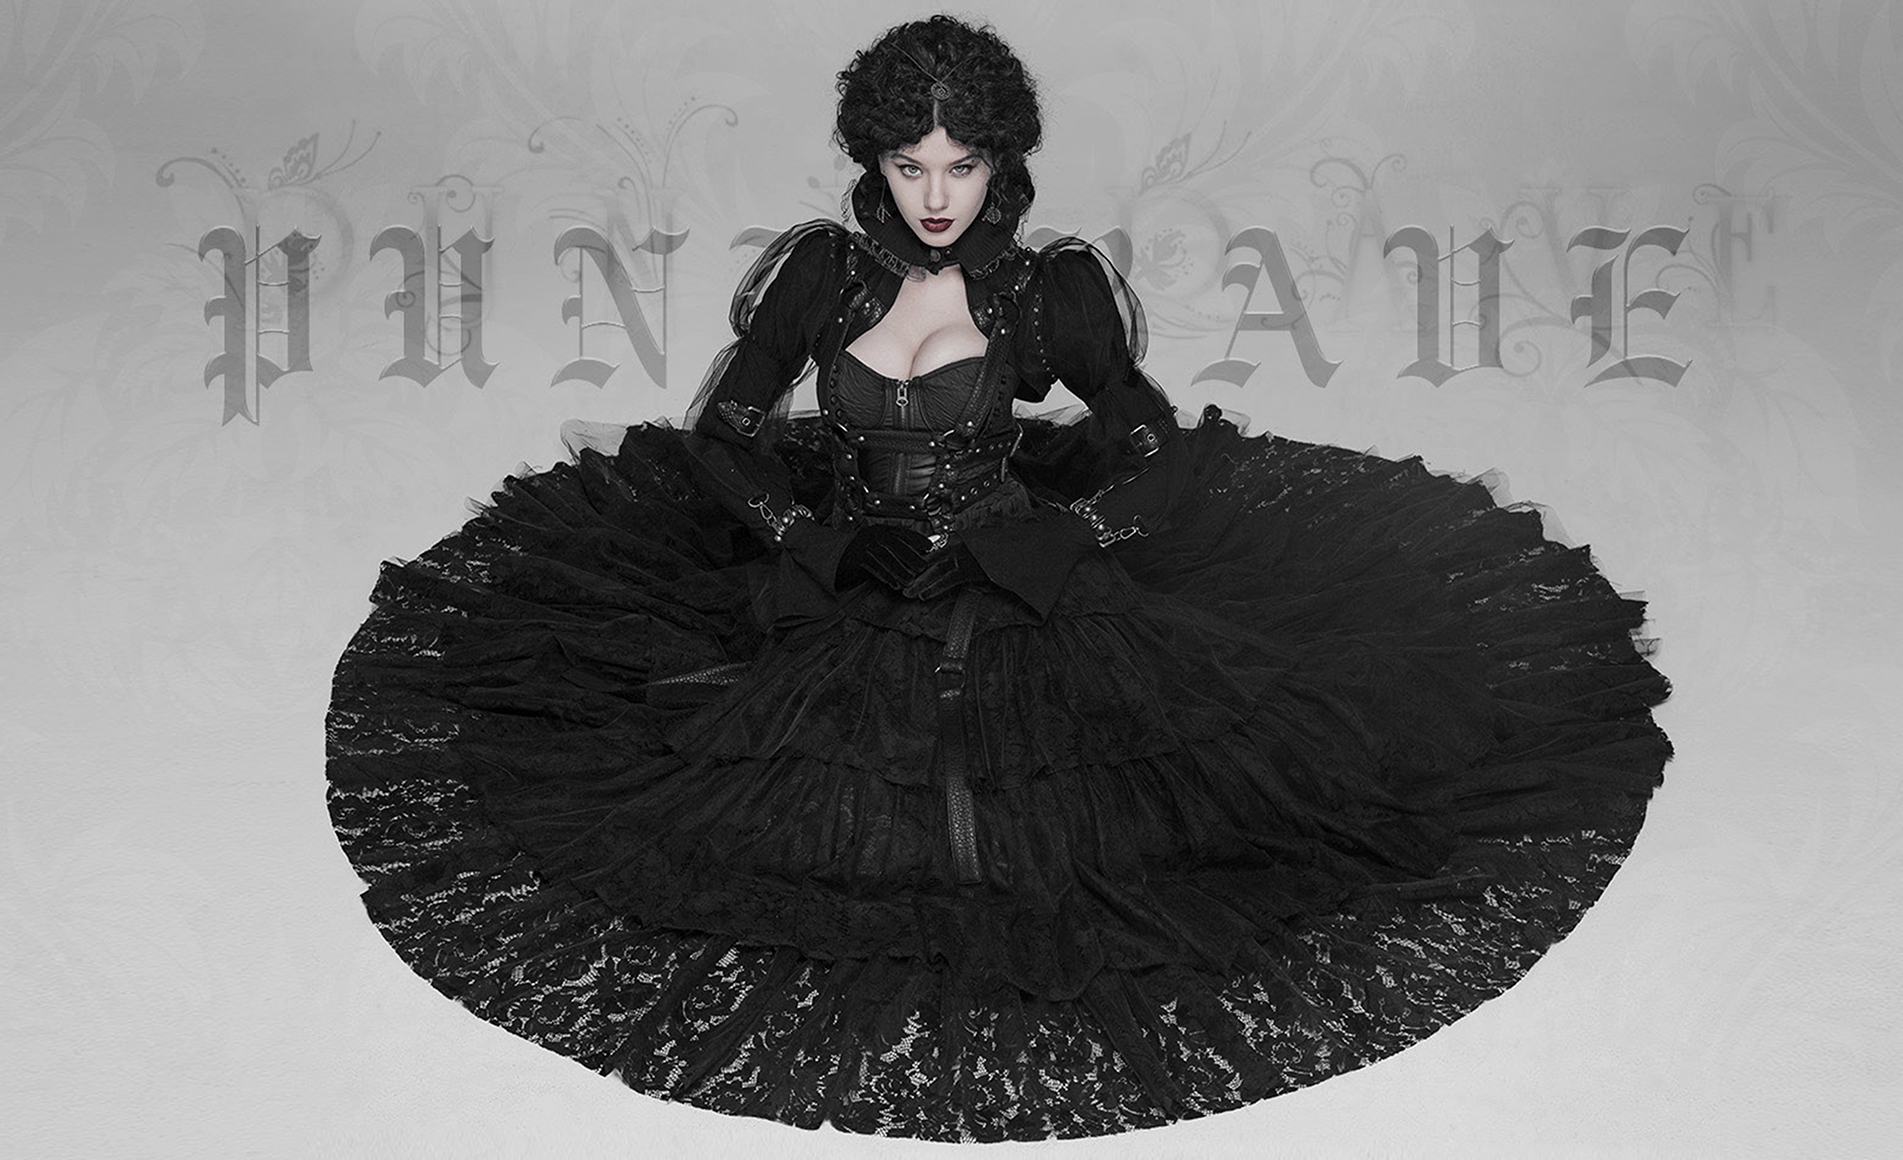 WOMENS PUNK RAVE GOTHIC, STEAMPUNK & LOLITA CLOTHING